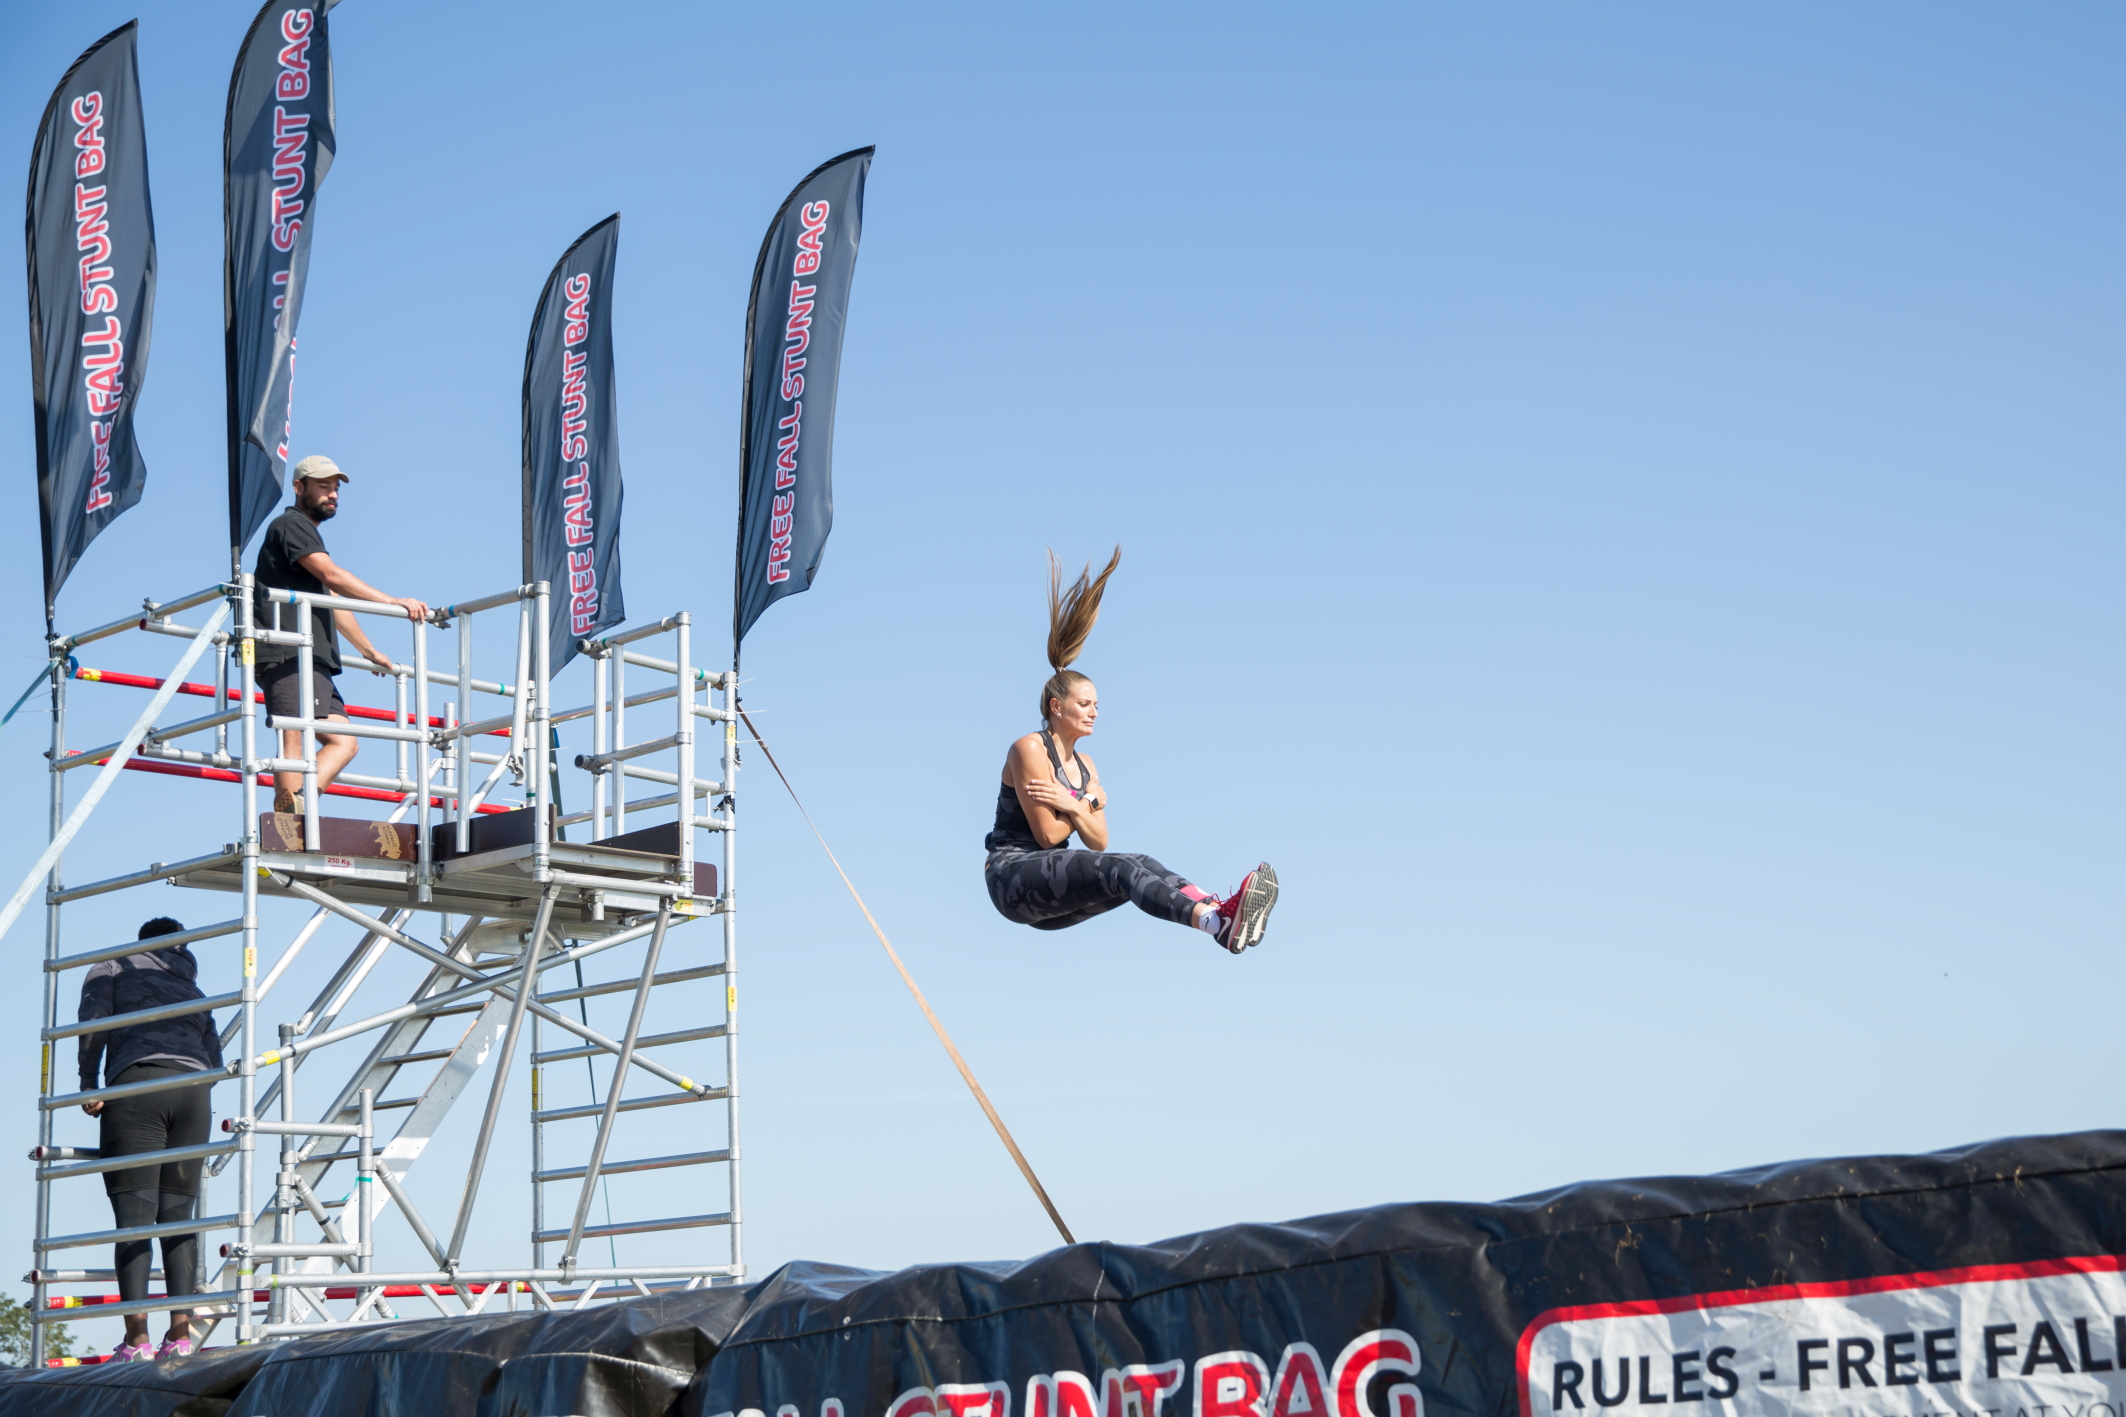 A woman jumps from a very high scaffolding tower onto a giant inflatable stunt bag below. Her pony tail stands straight up from her head as she falls through space